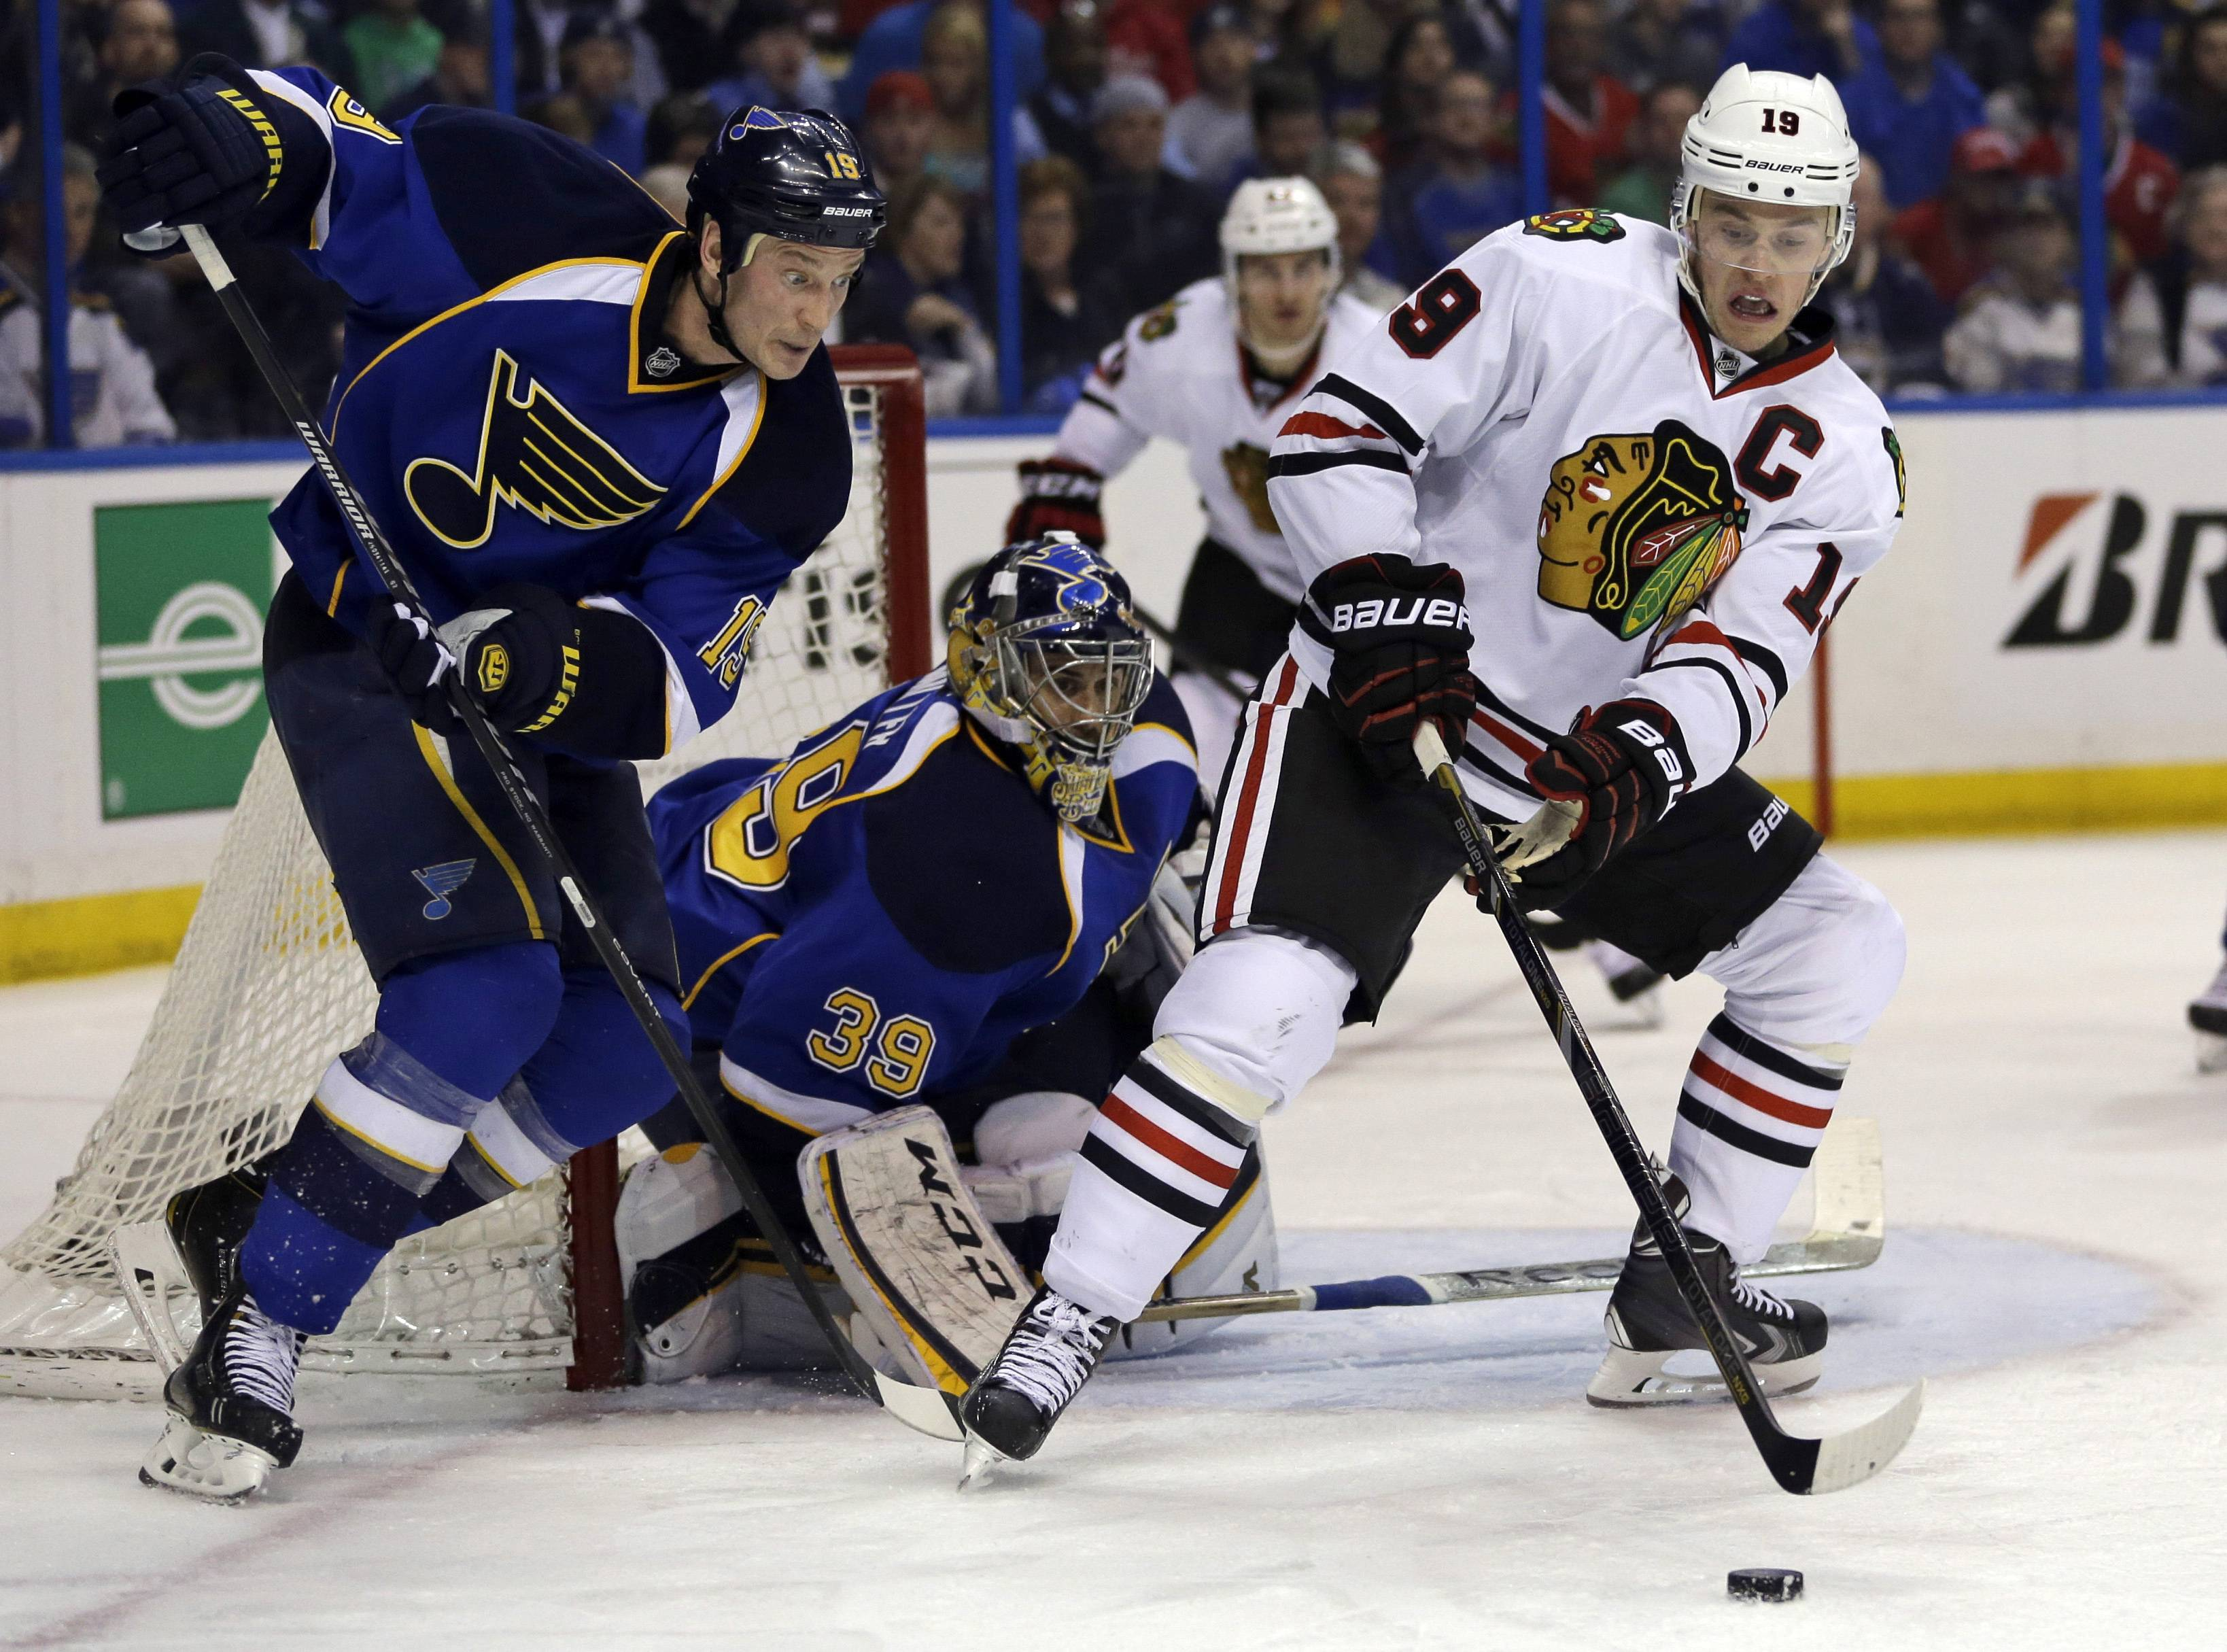 The Blackhawks' Jonathan Toews controls the puck as St. Louis Blues goalie Ryan Miller and Jay Bouwmeester, left, defend during the third period in Game 1 on Thursday night.